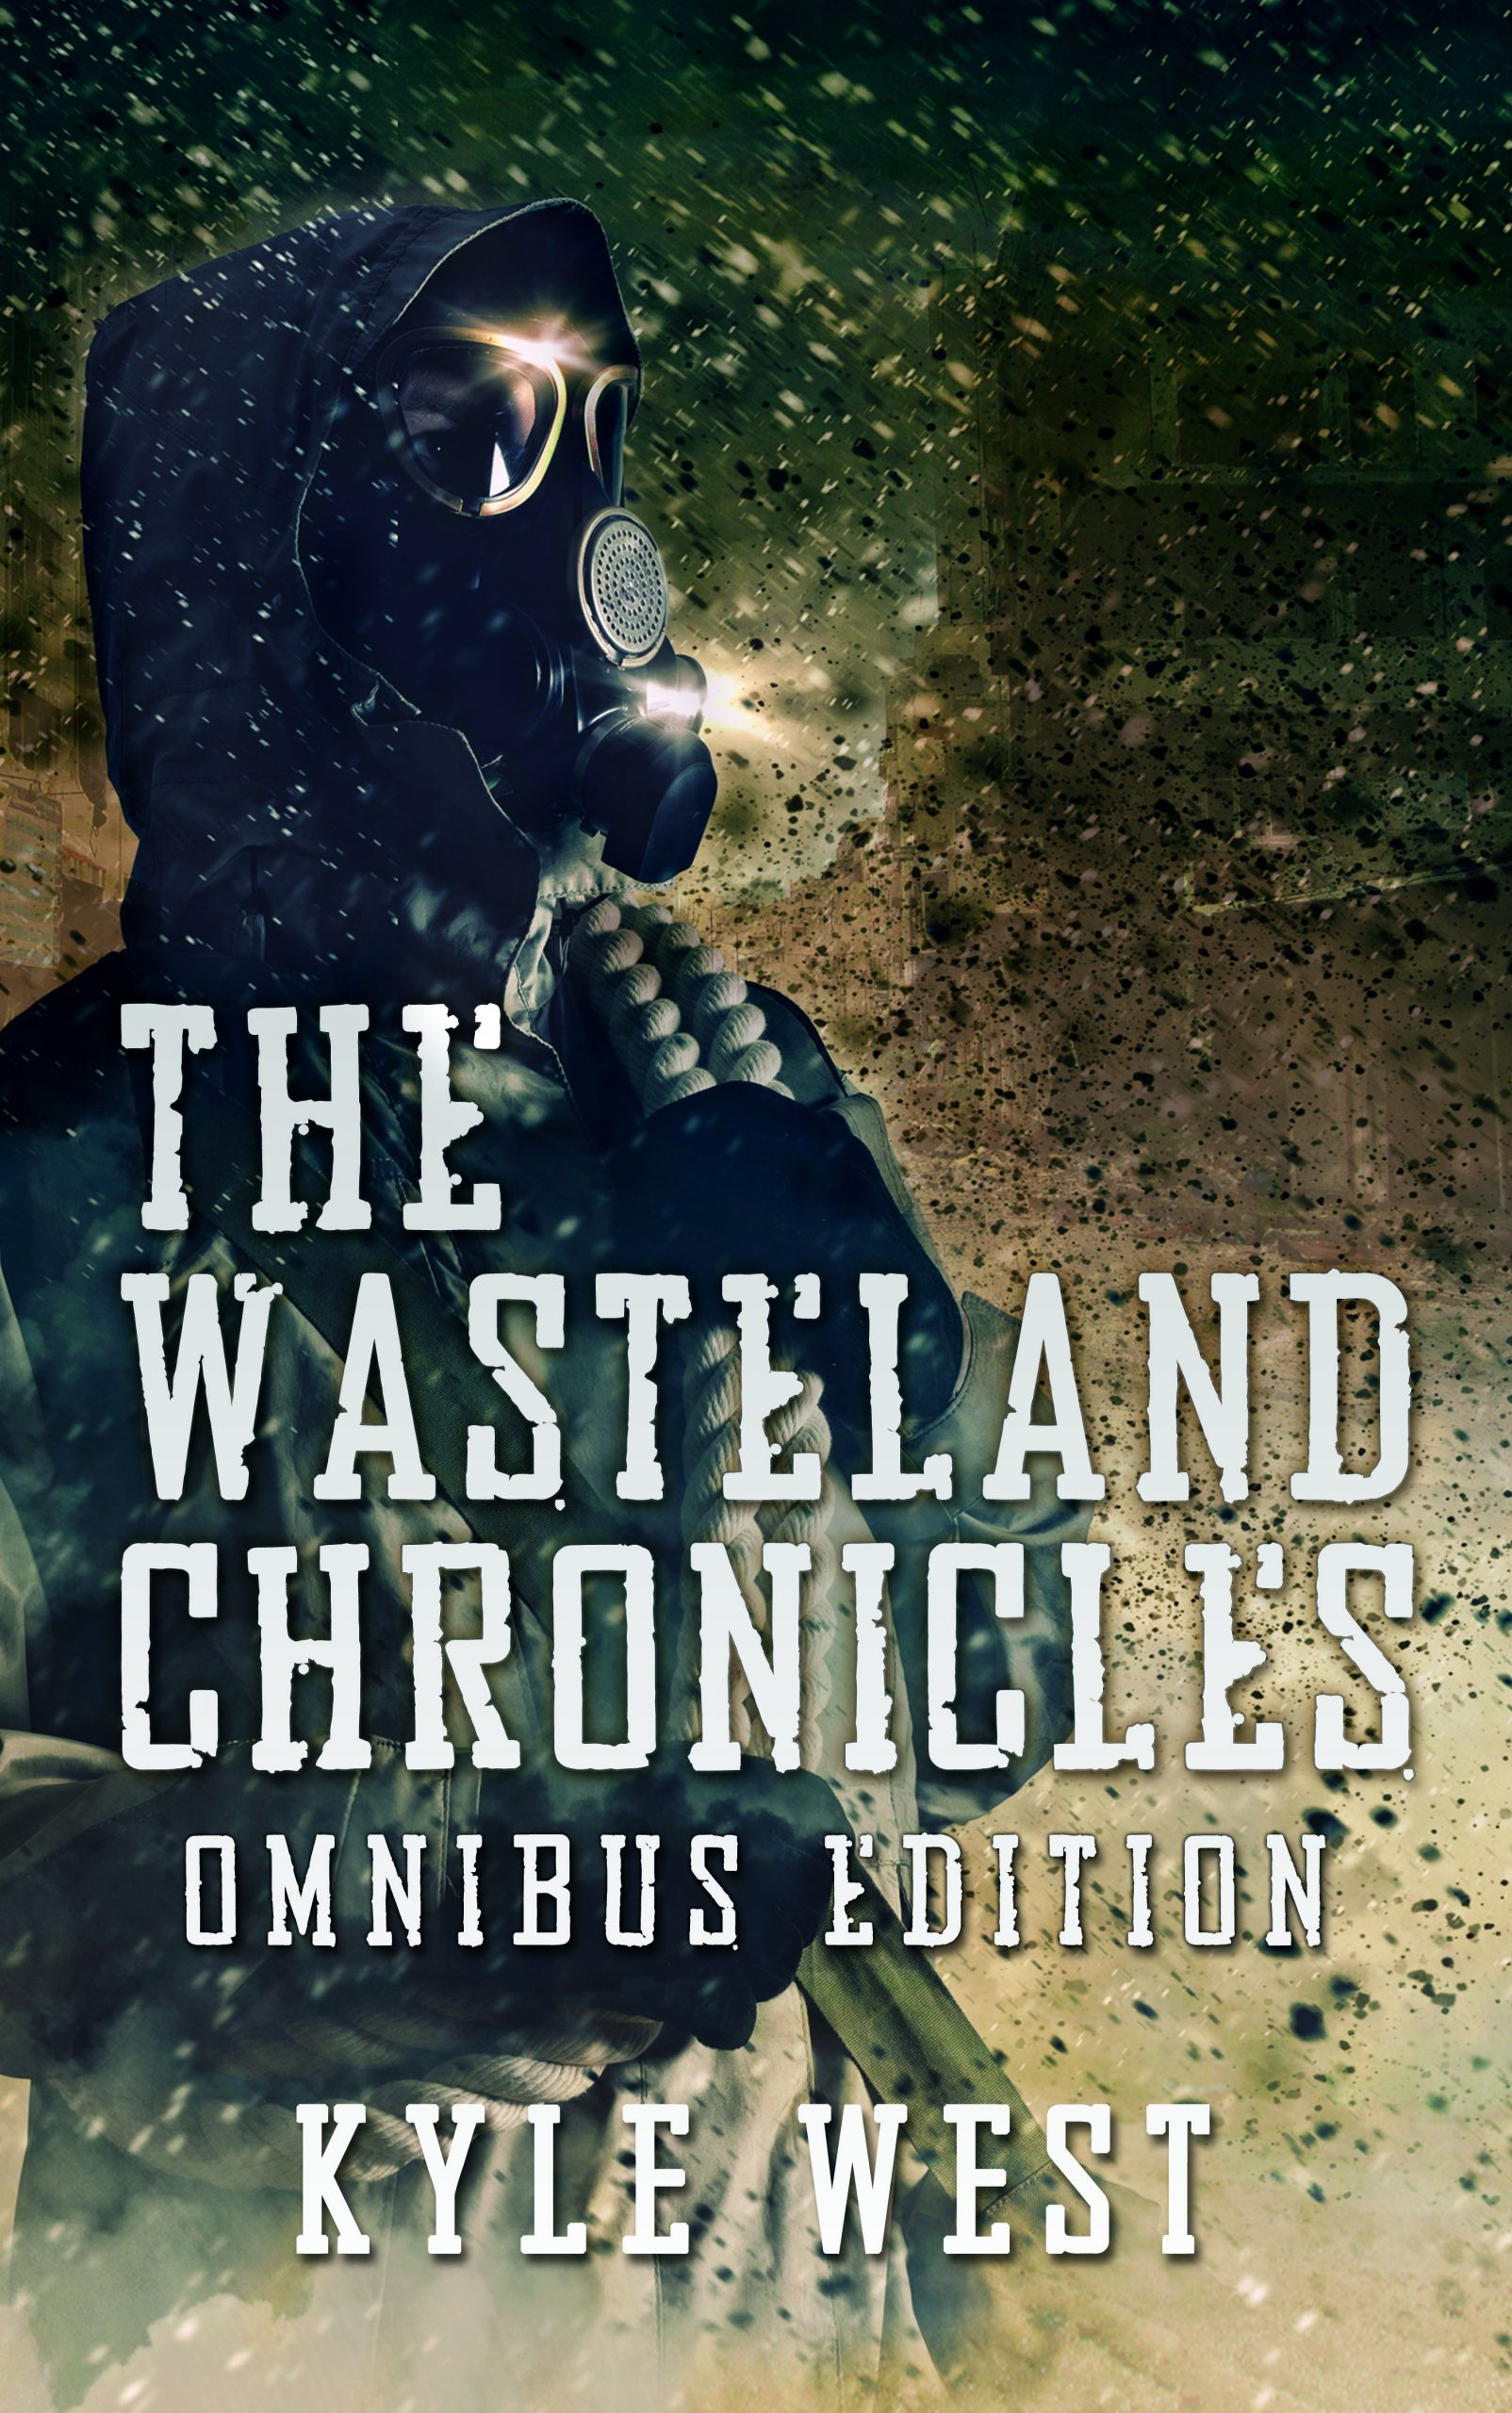 Wasteland Omnibus should be going live on all retailers very soon!